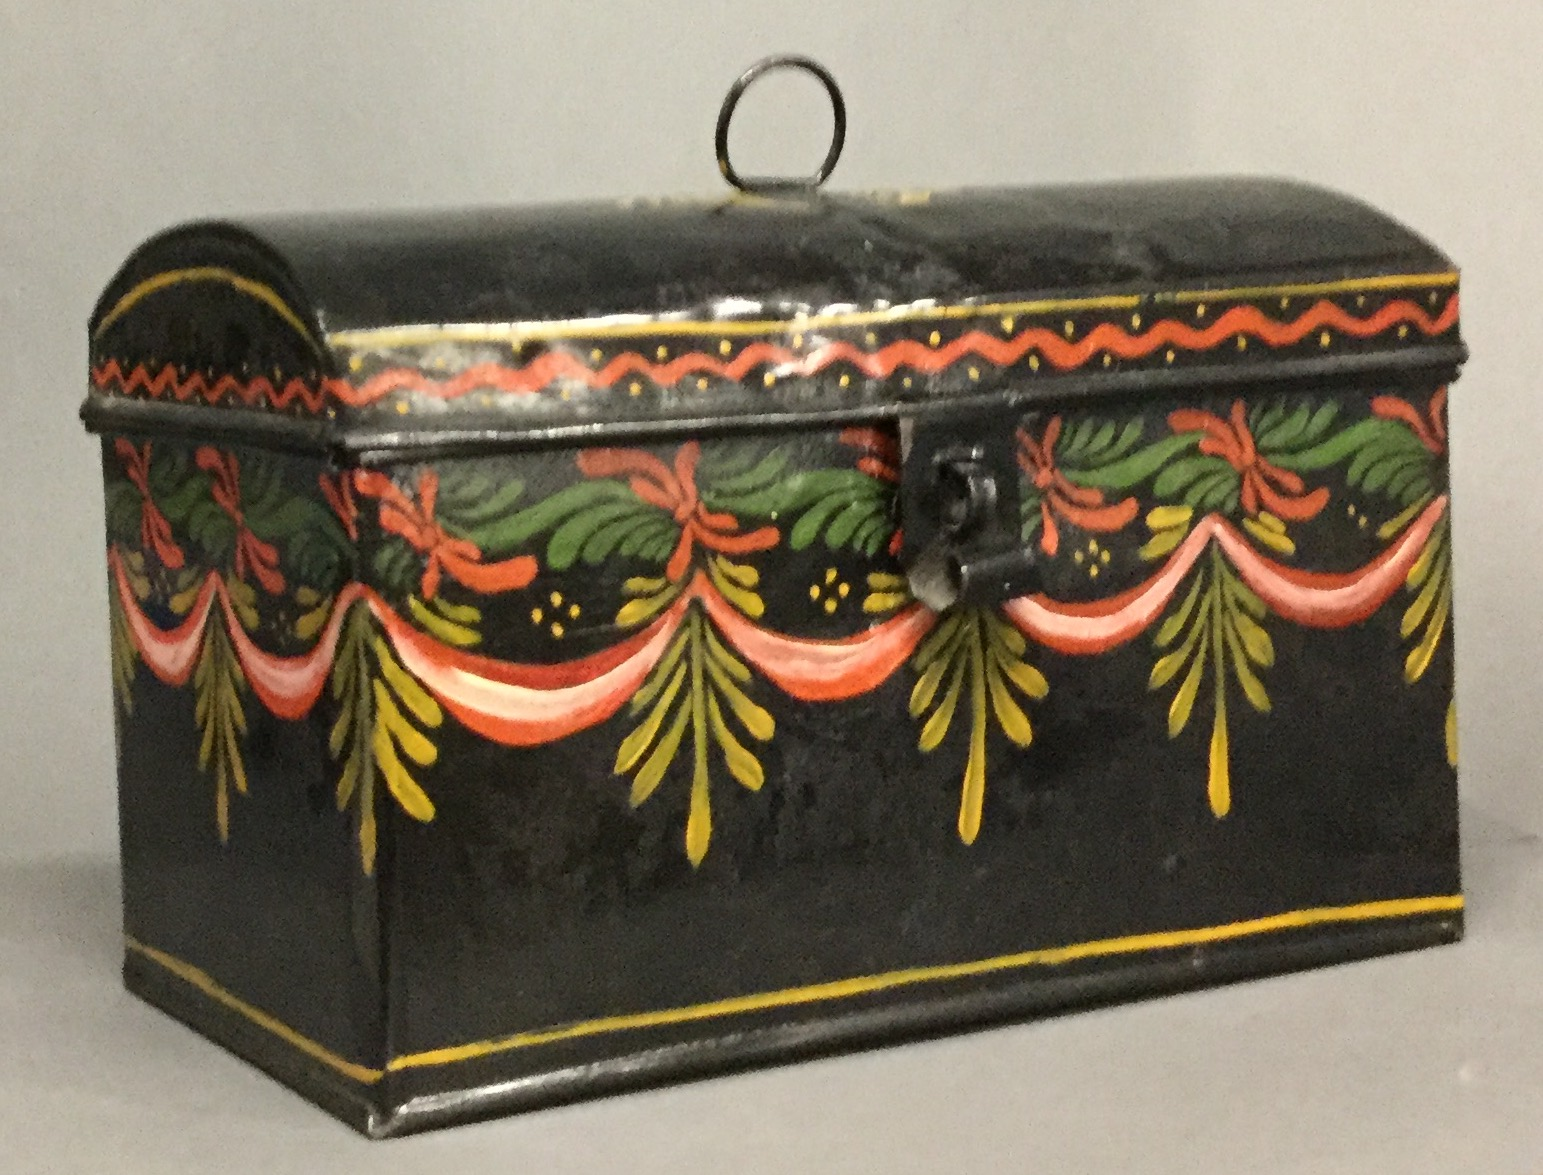 Antique-Tole-Painted-Document-Box_63324B.jpg